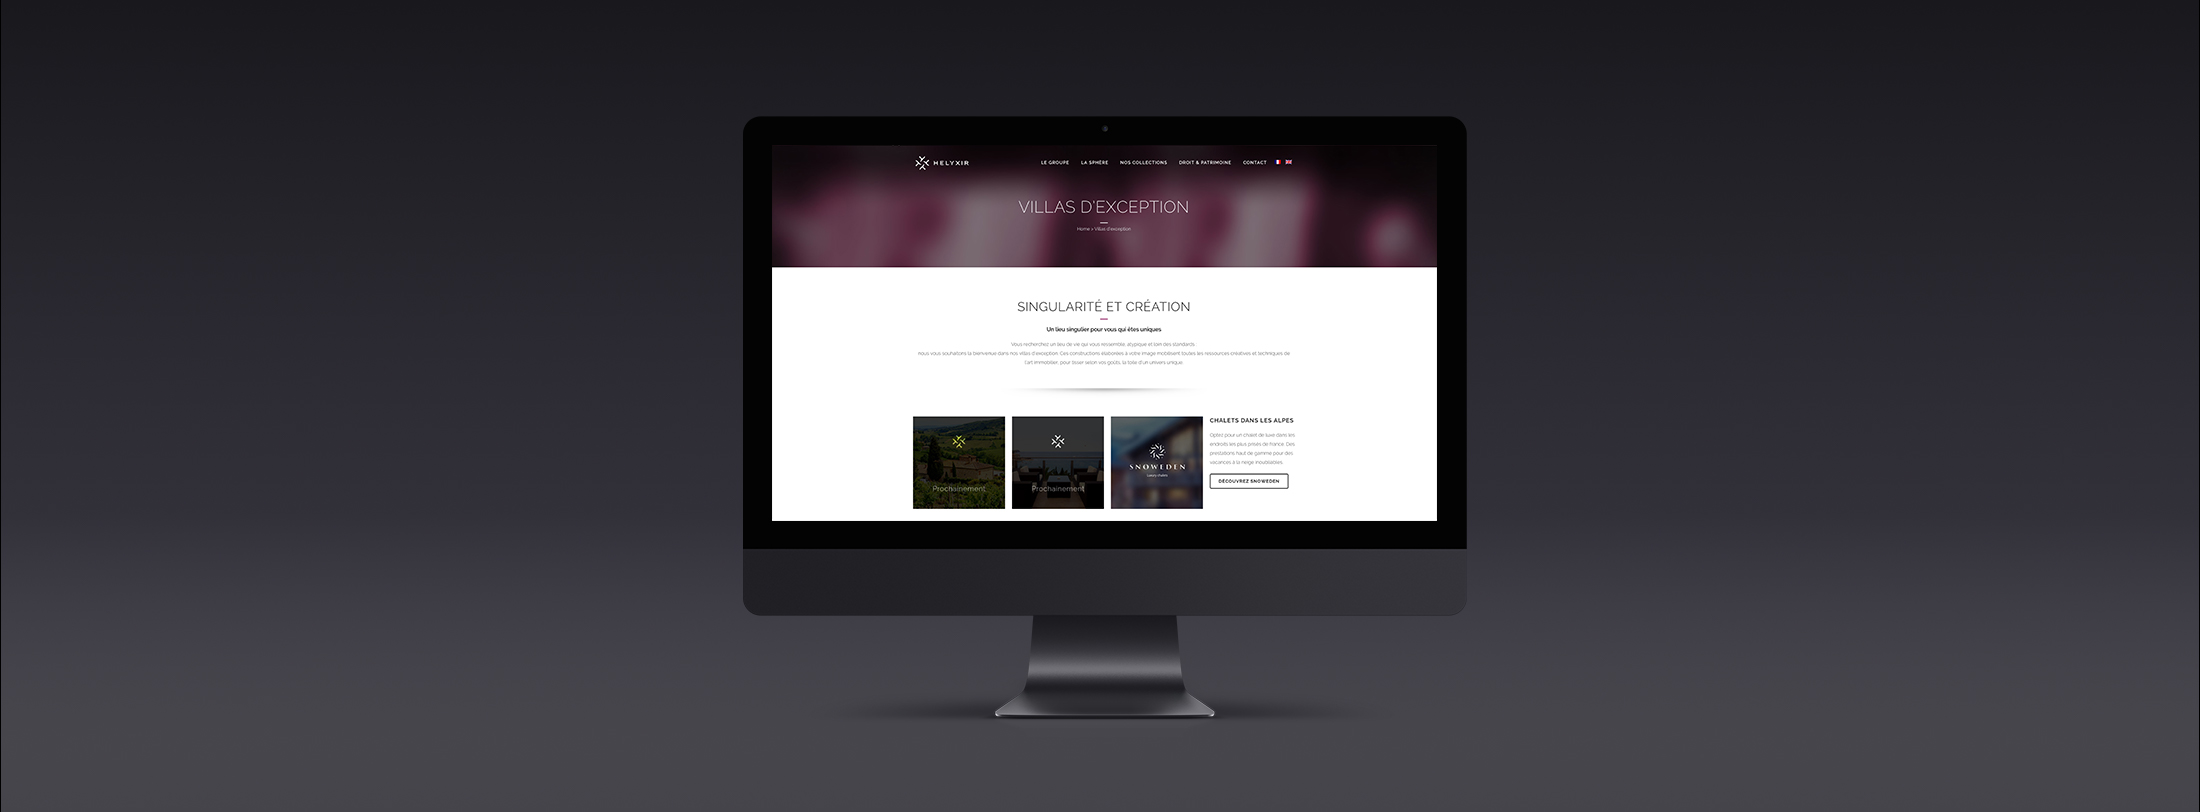 helyxir-groupe-osb-communication-web-webdesign-site